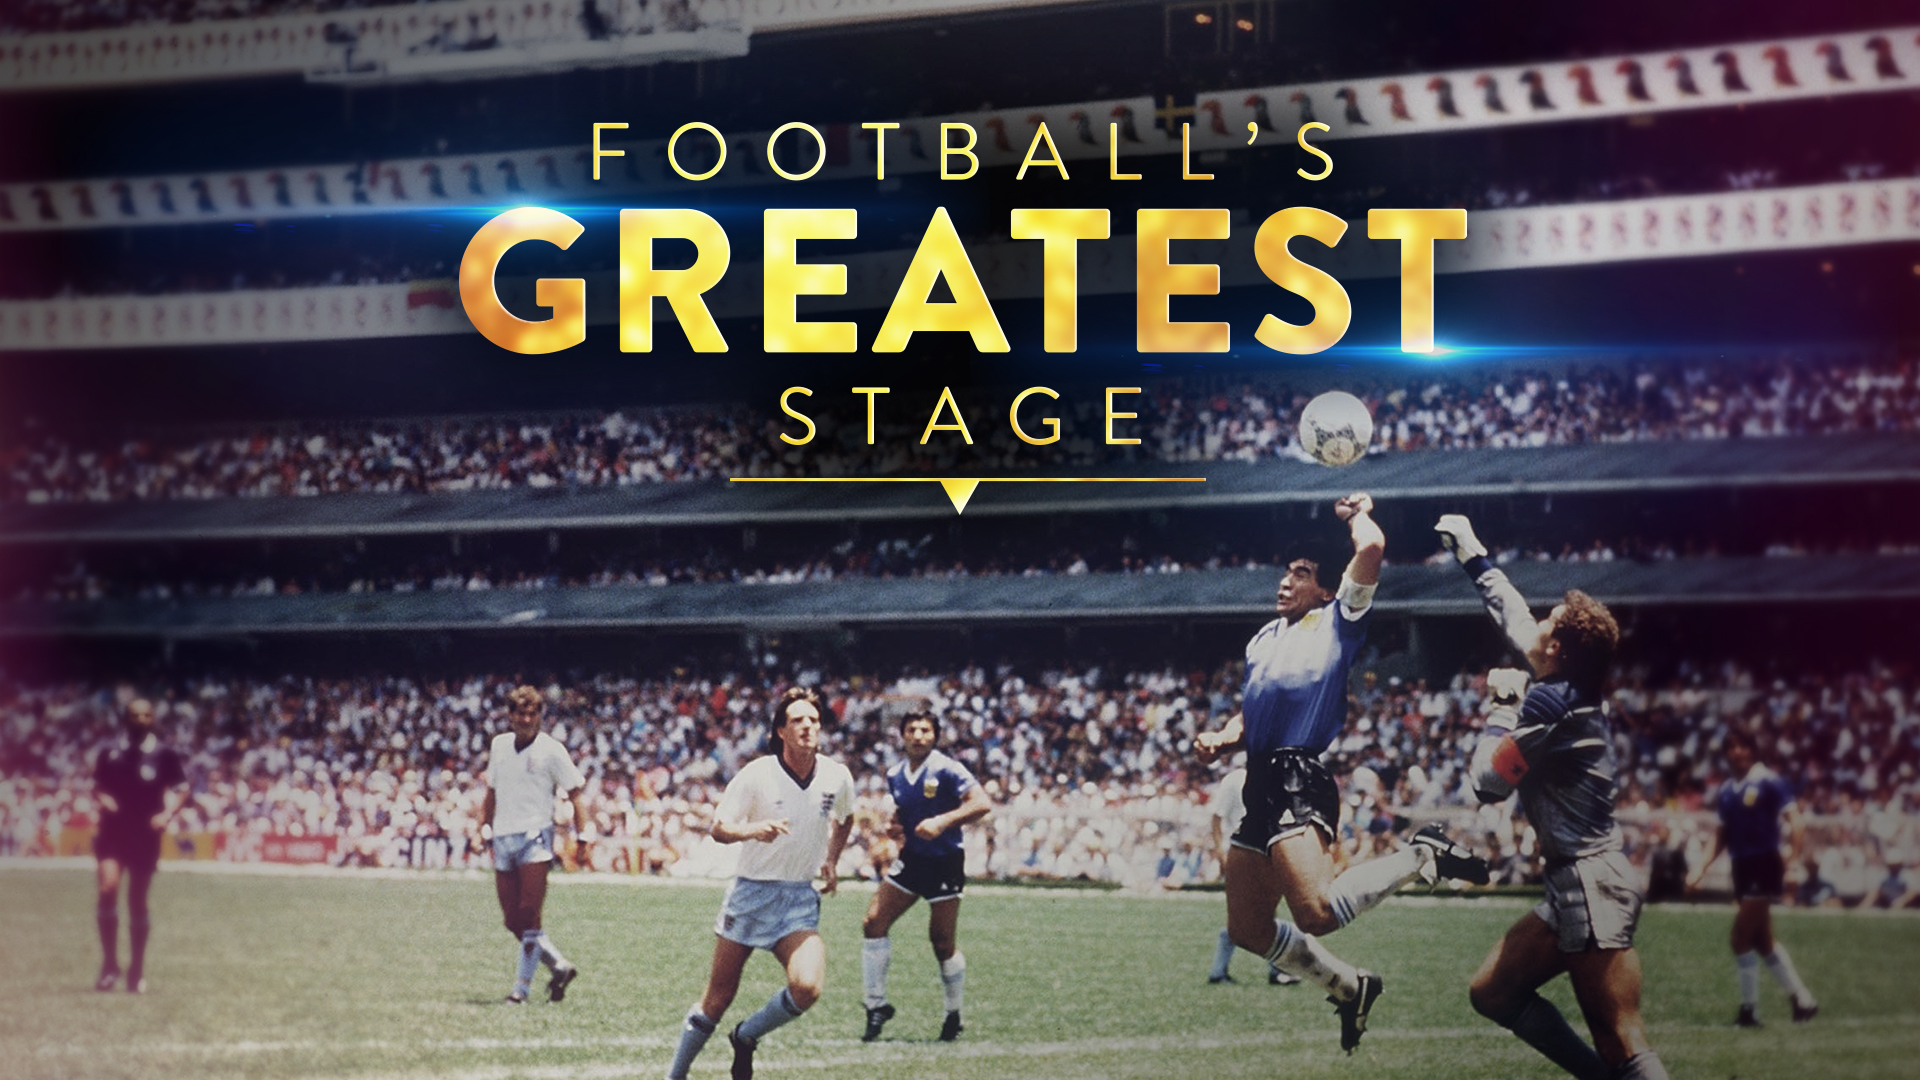 Football's Greatest Stage